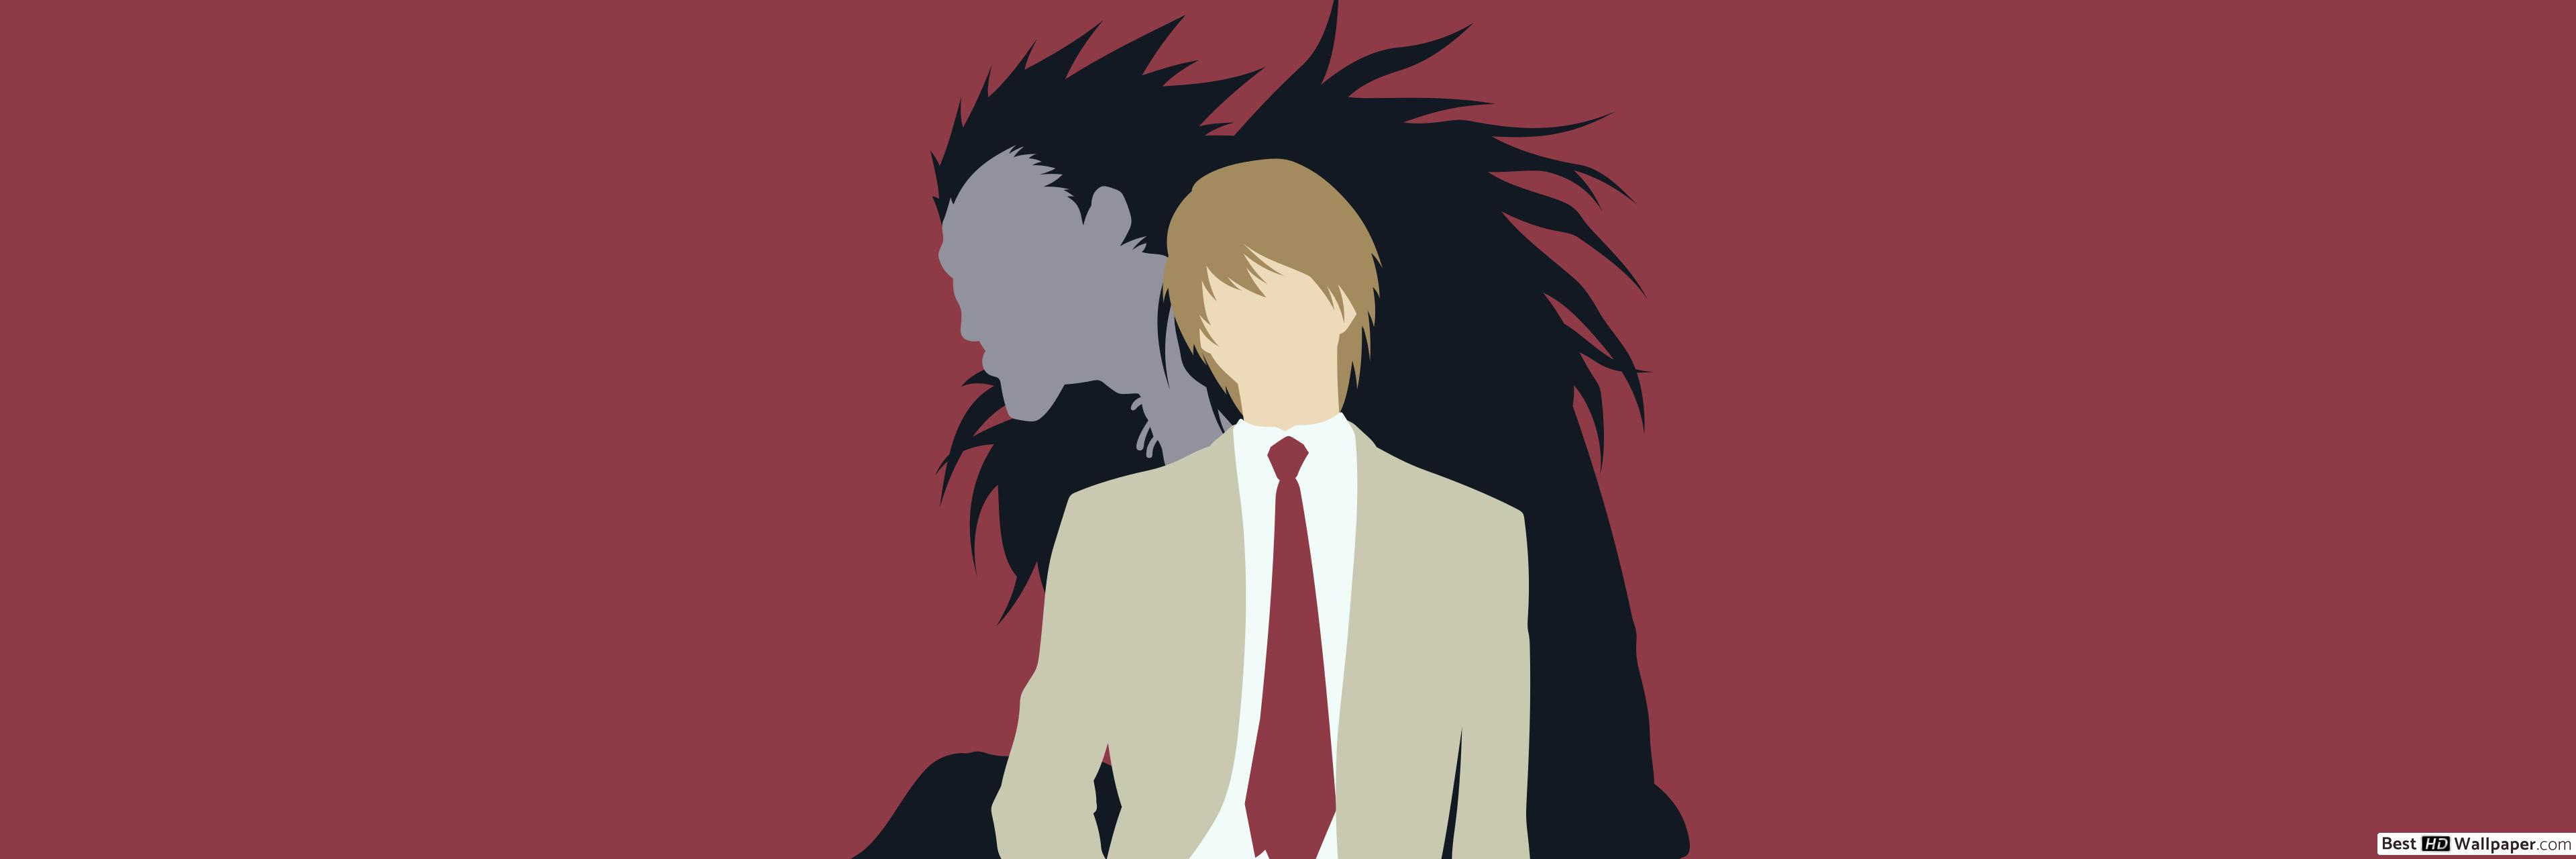 Light Yagami 2287631 Hd Wallpaper Backgrounds Download